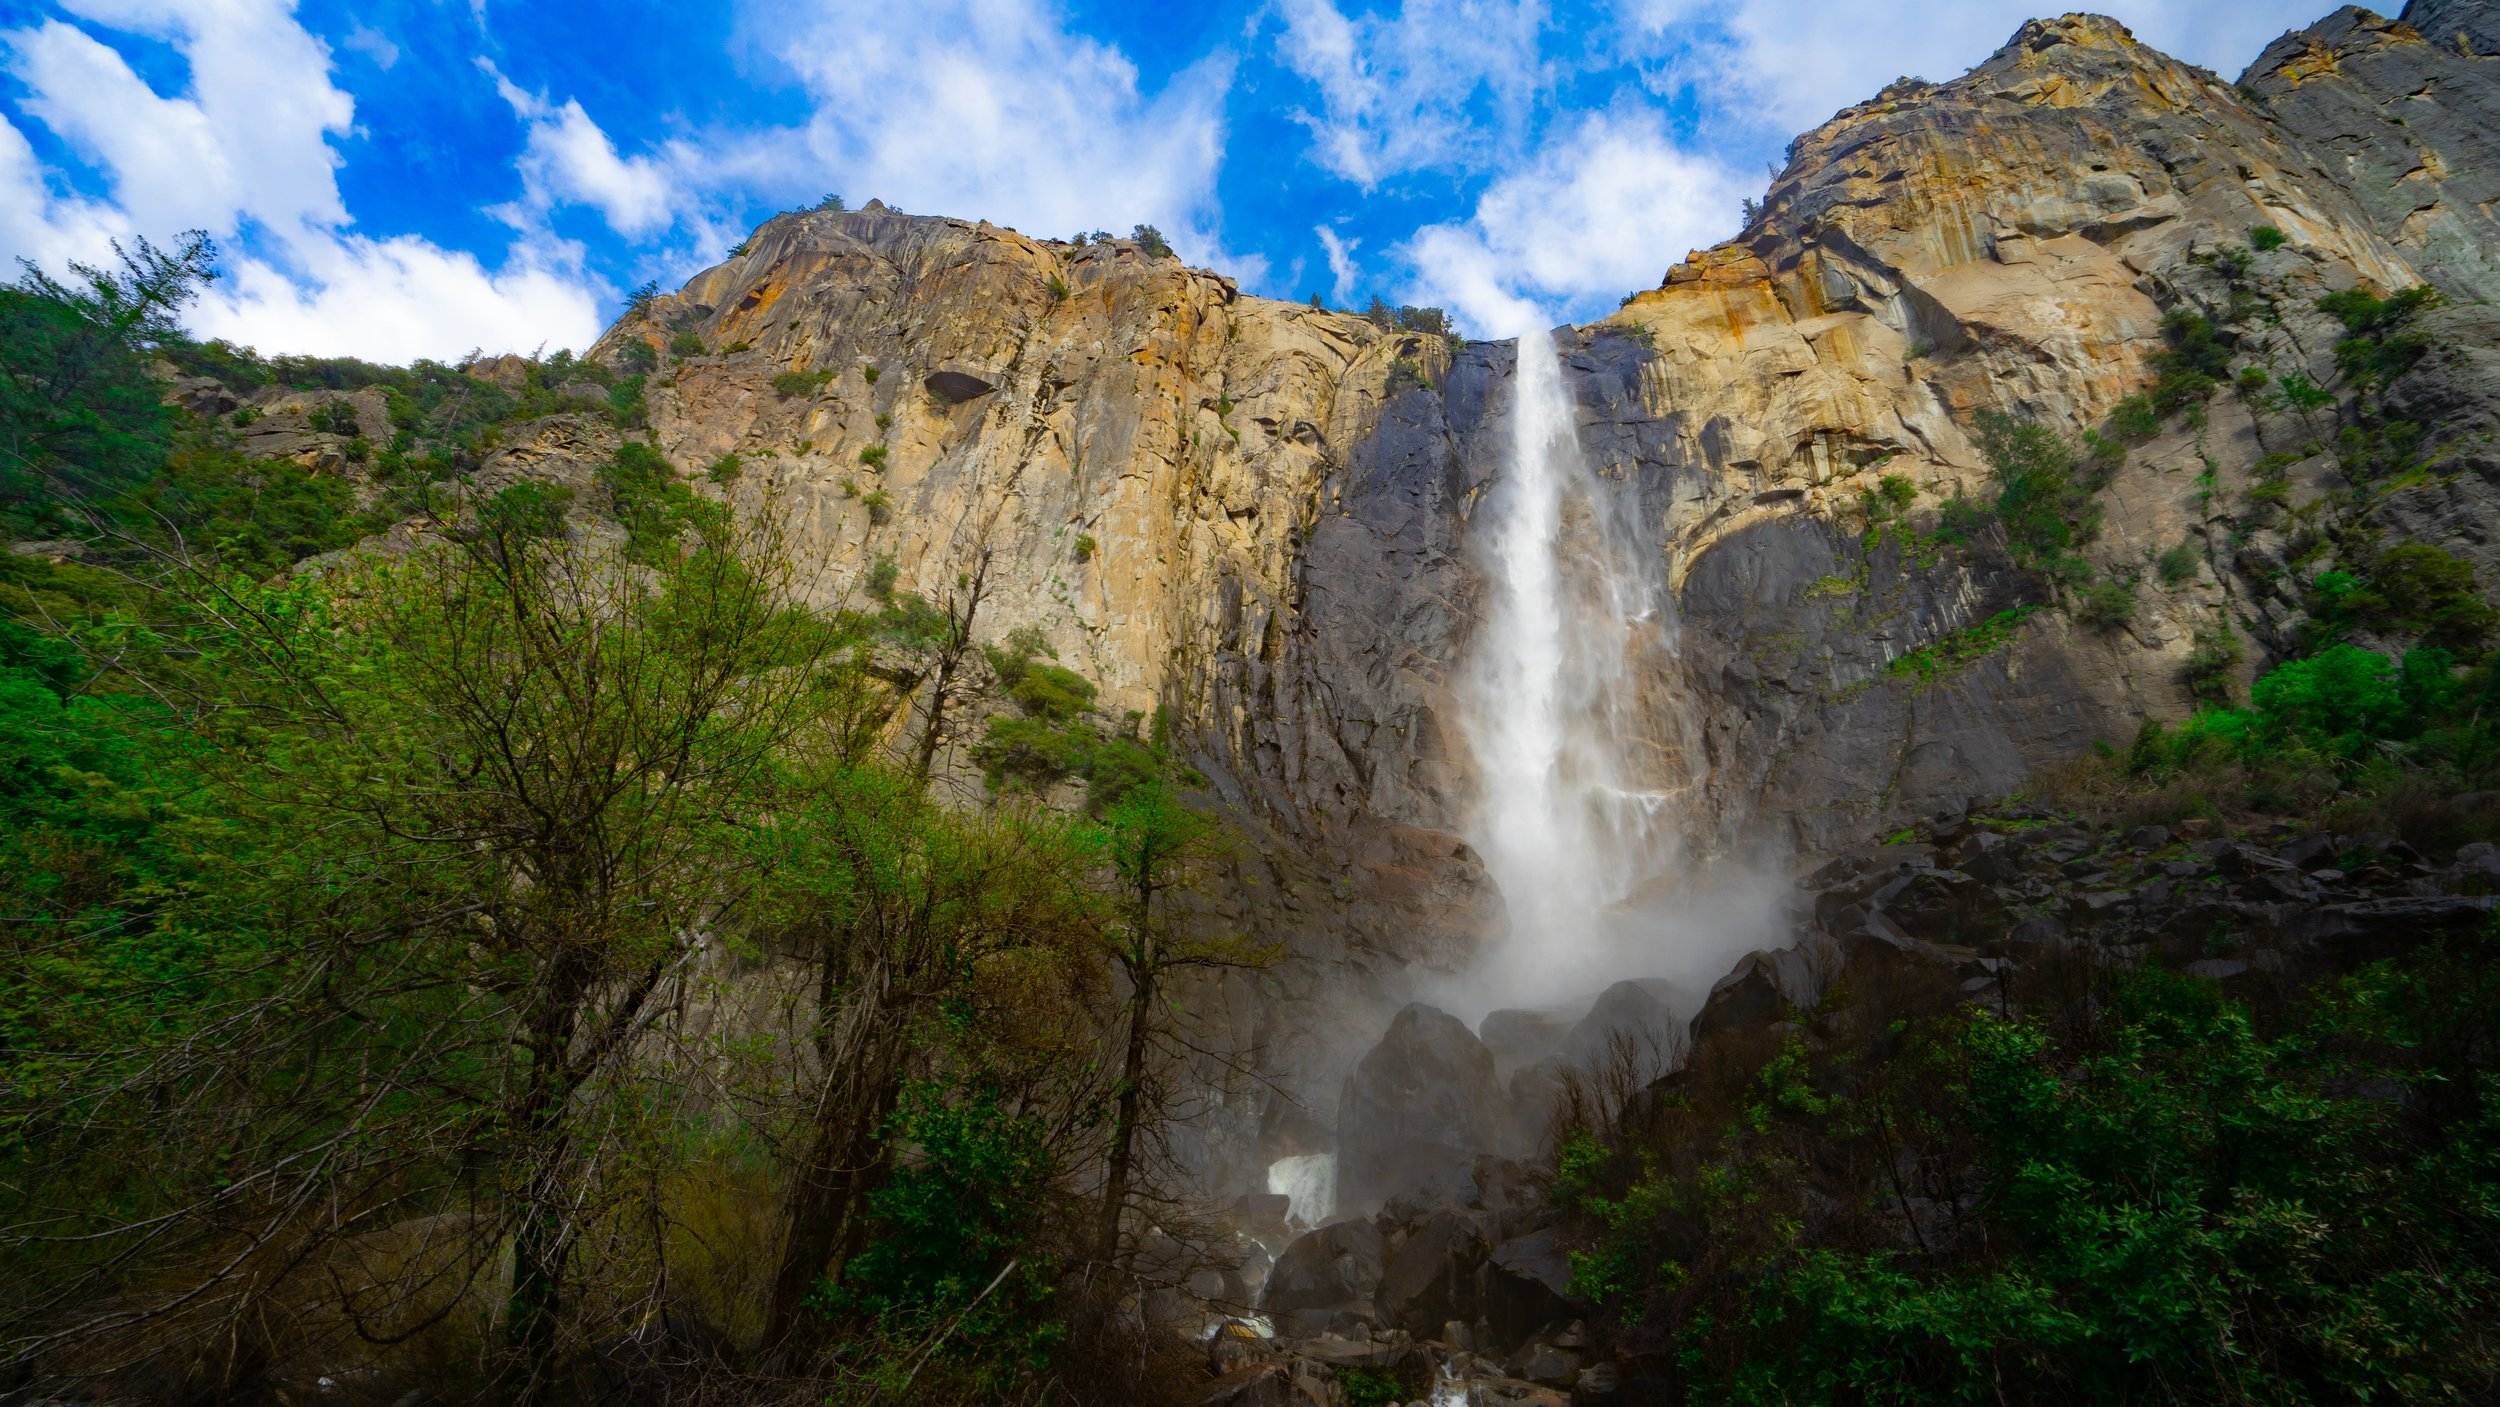 One of best national parks in the USA : Yosemite. Pictured above is a waterfall from the beautiful yosemite national park.